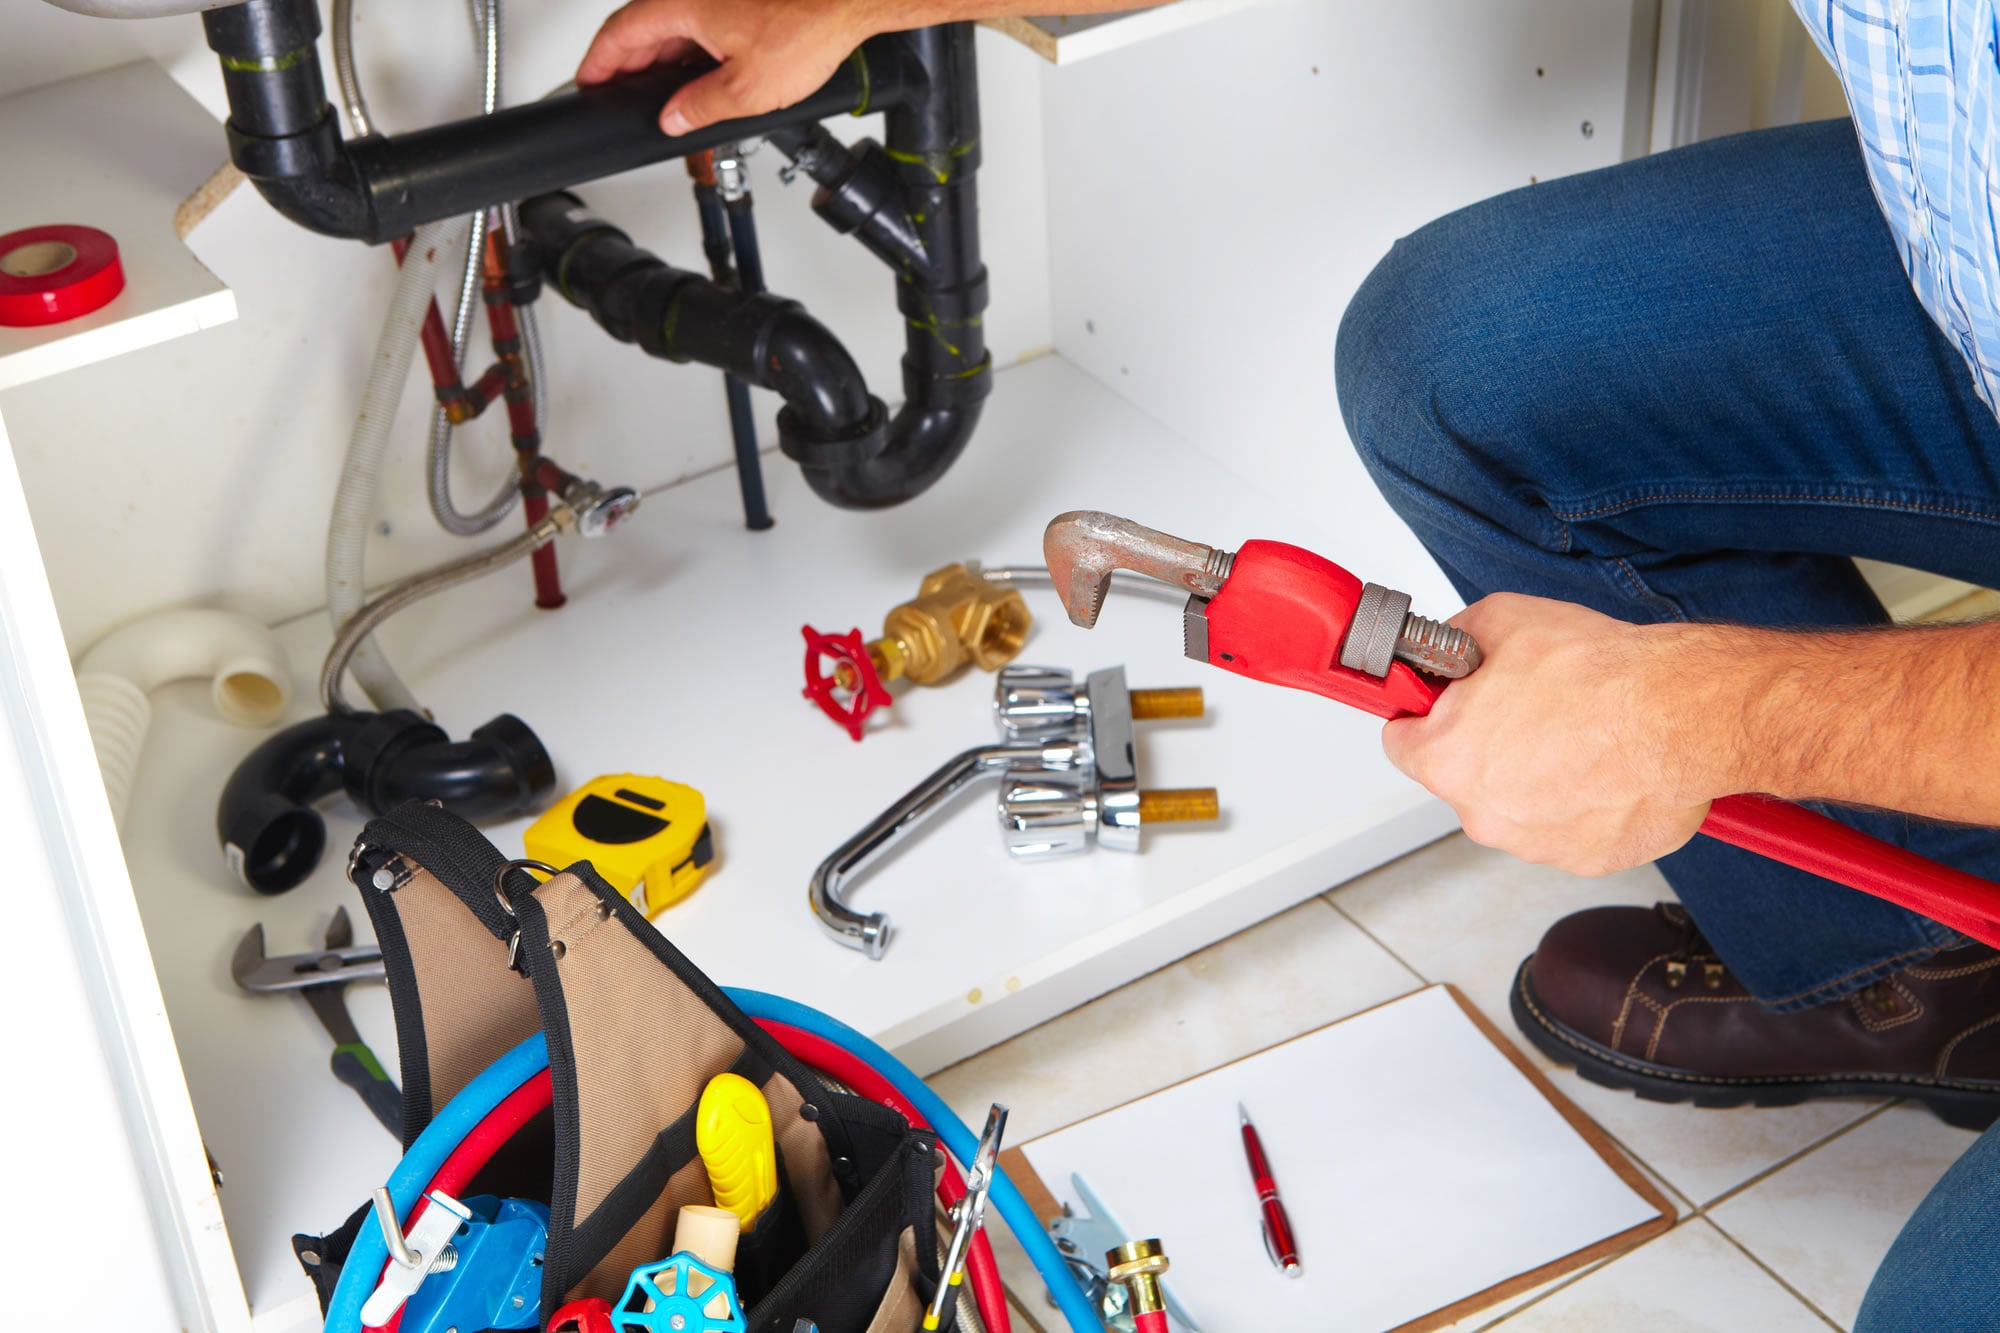 Kitchen sink plumbing repair by Goolsby Bros Plumbing & Electrical